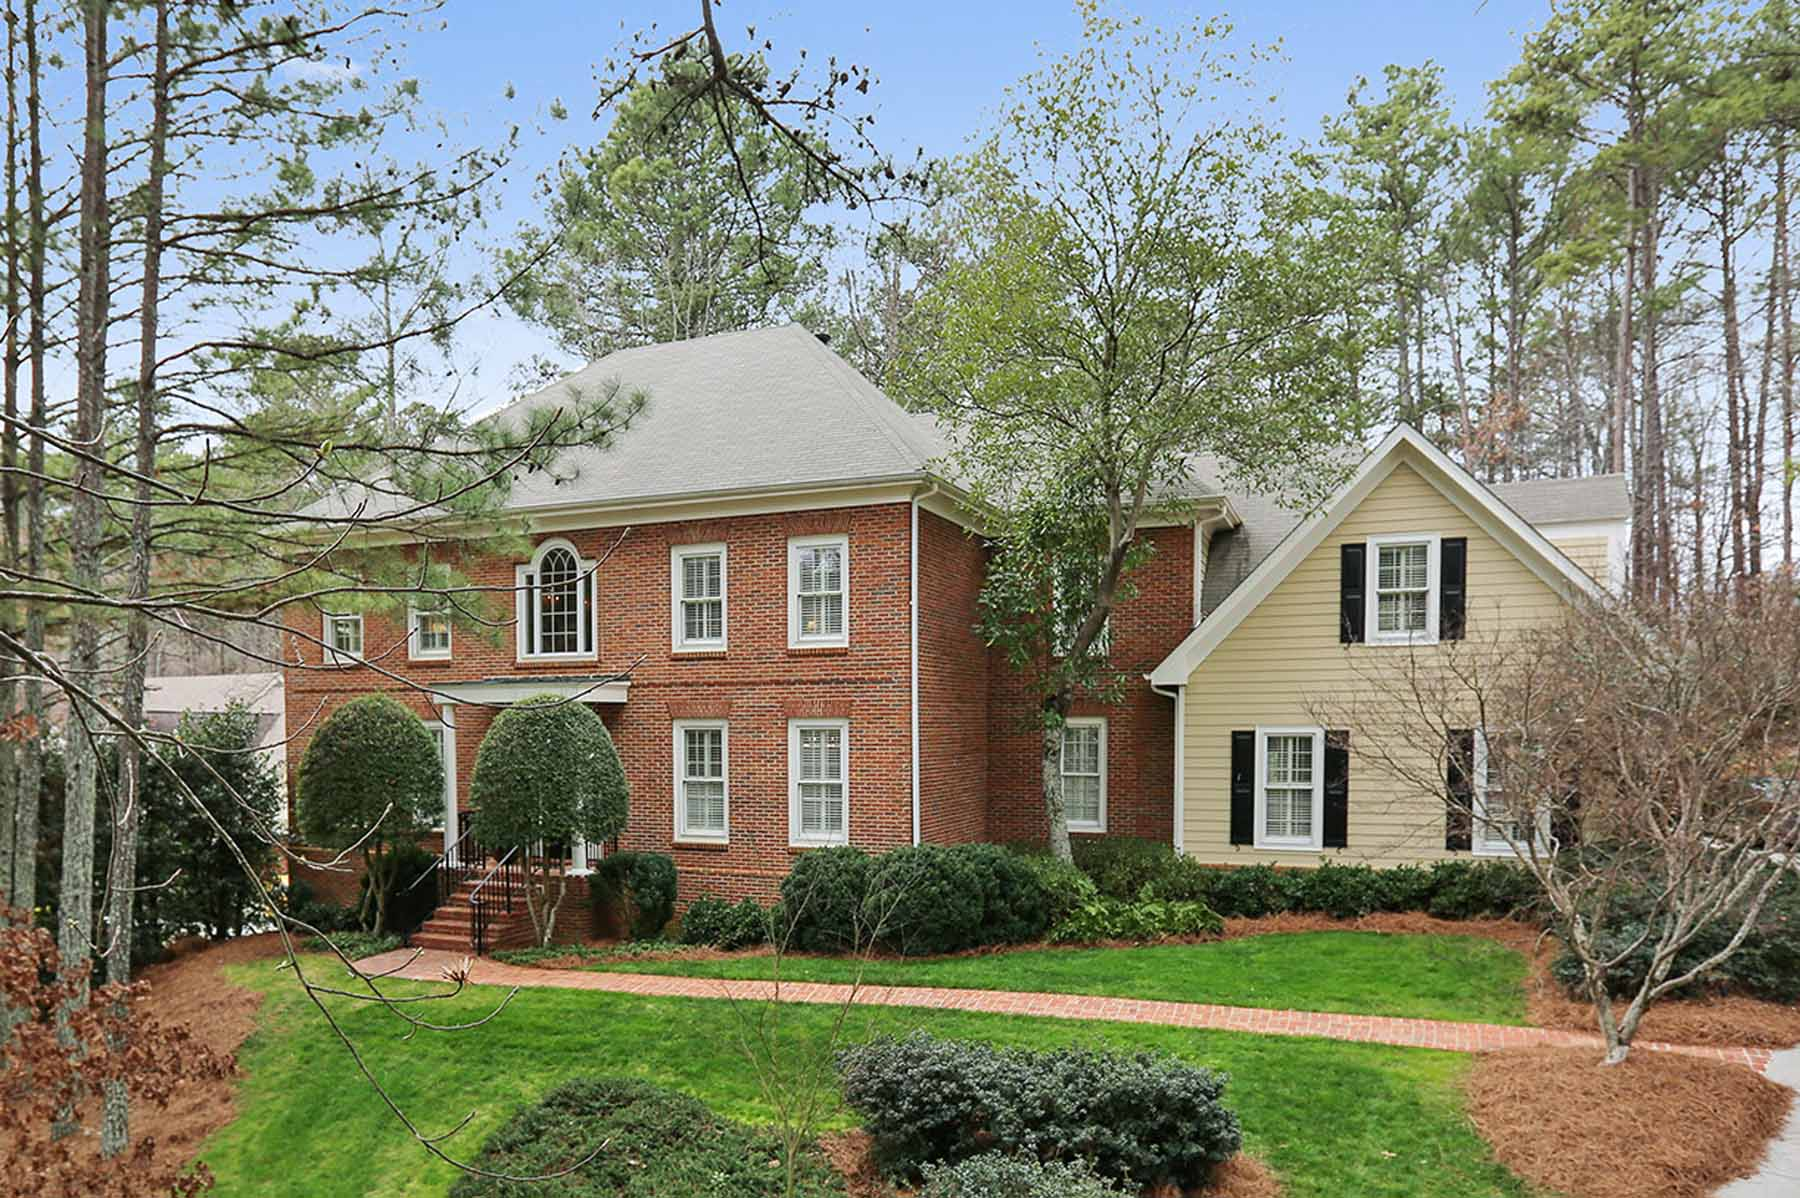 Moradia para Venda às Beautiful Brick Home In Popular Johns Creek 730 Buttercup Trace Johns Creek, Geórgia, 30097 Estados Unidos